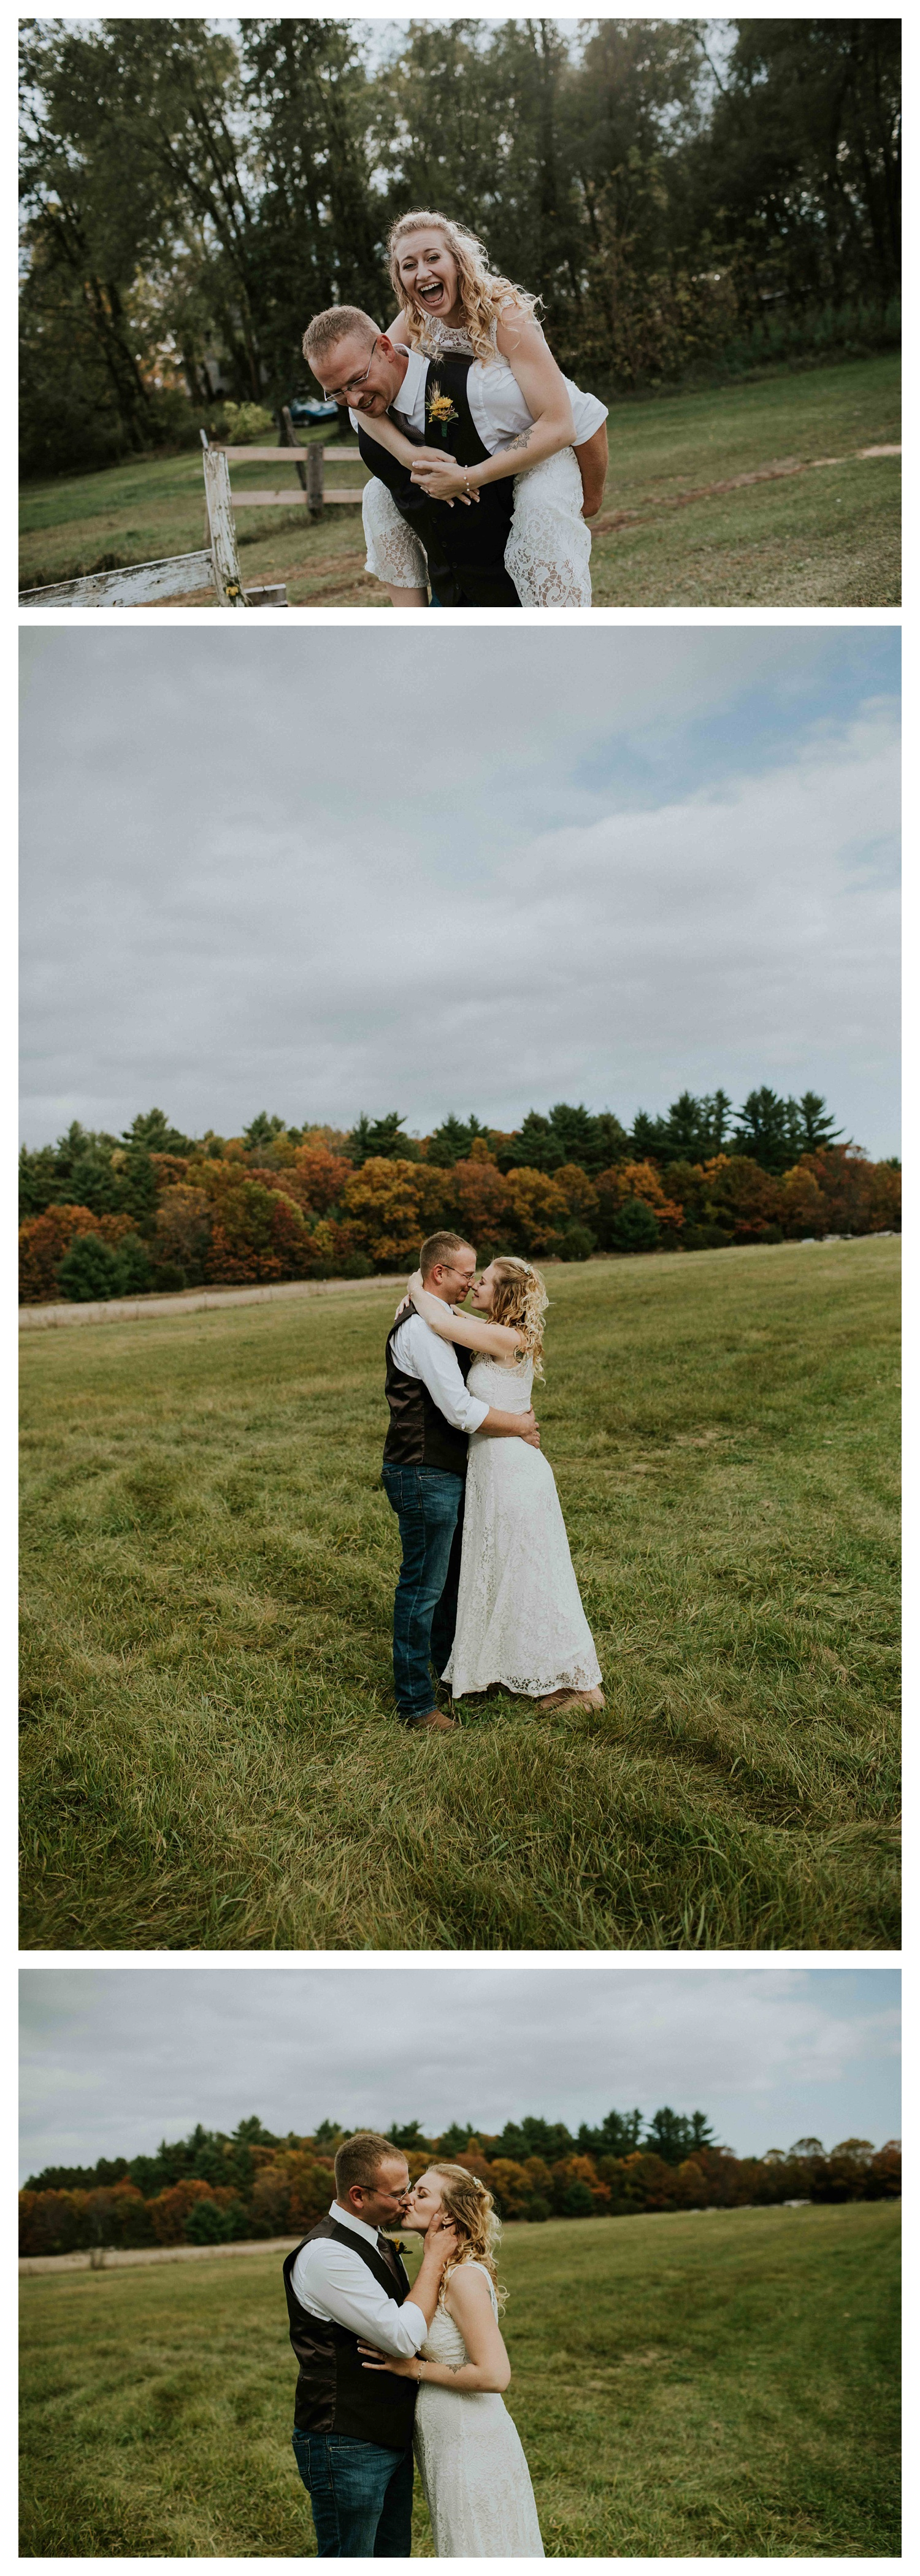 clauson barn wedding photographer chloe ann photography madison wisconsin photographer_0008.jpg